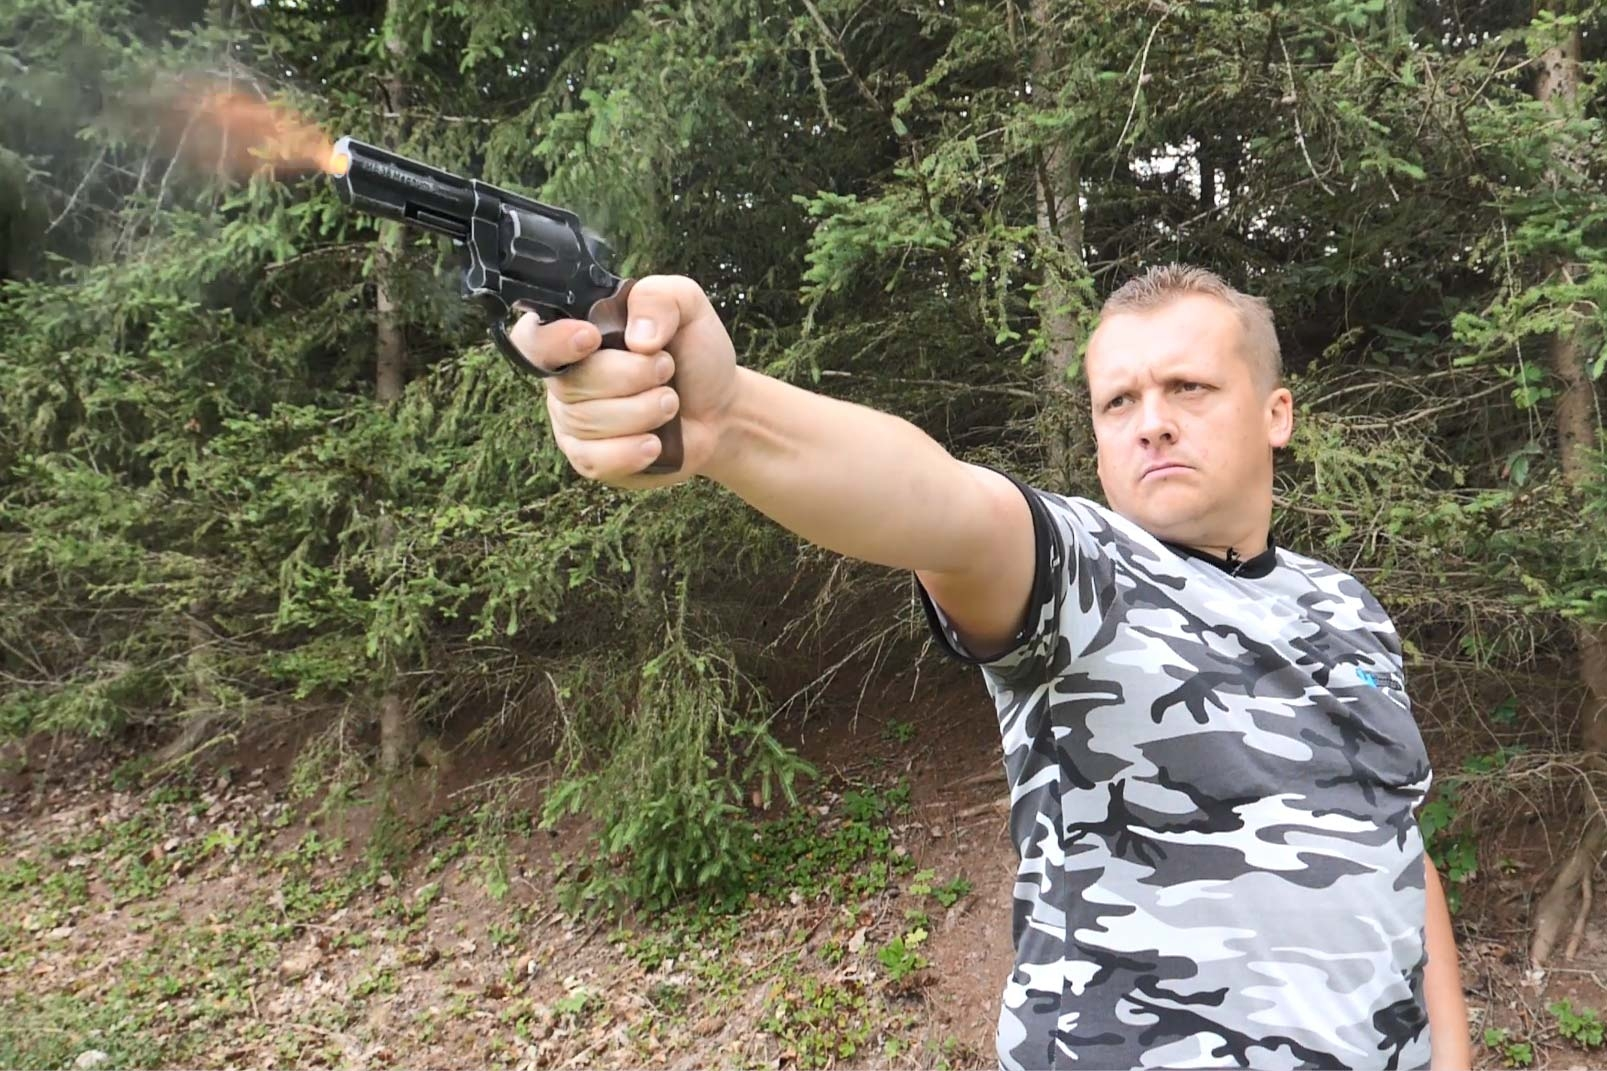 pistols: Review & engineering: Melcher ME 38 Magnum blank-firing revolver